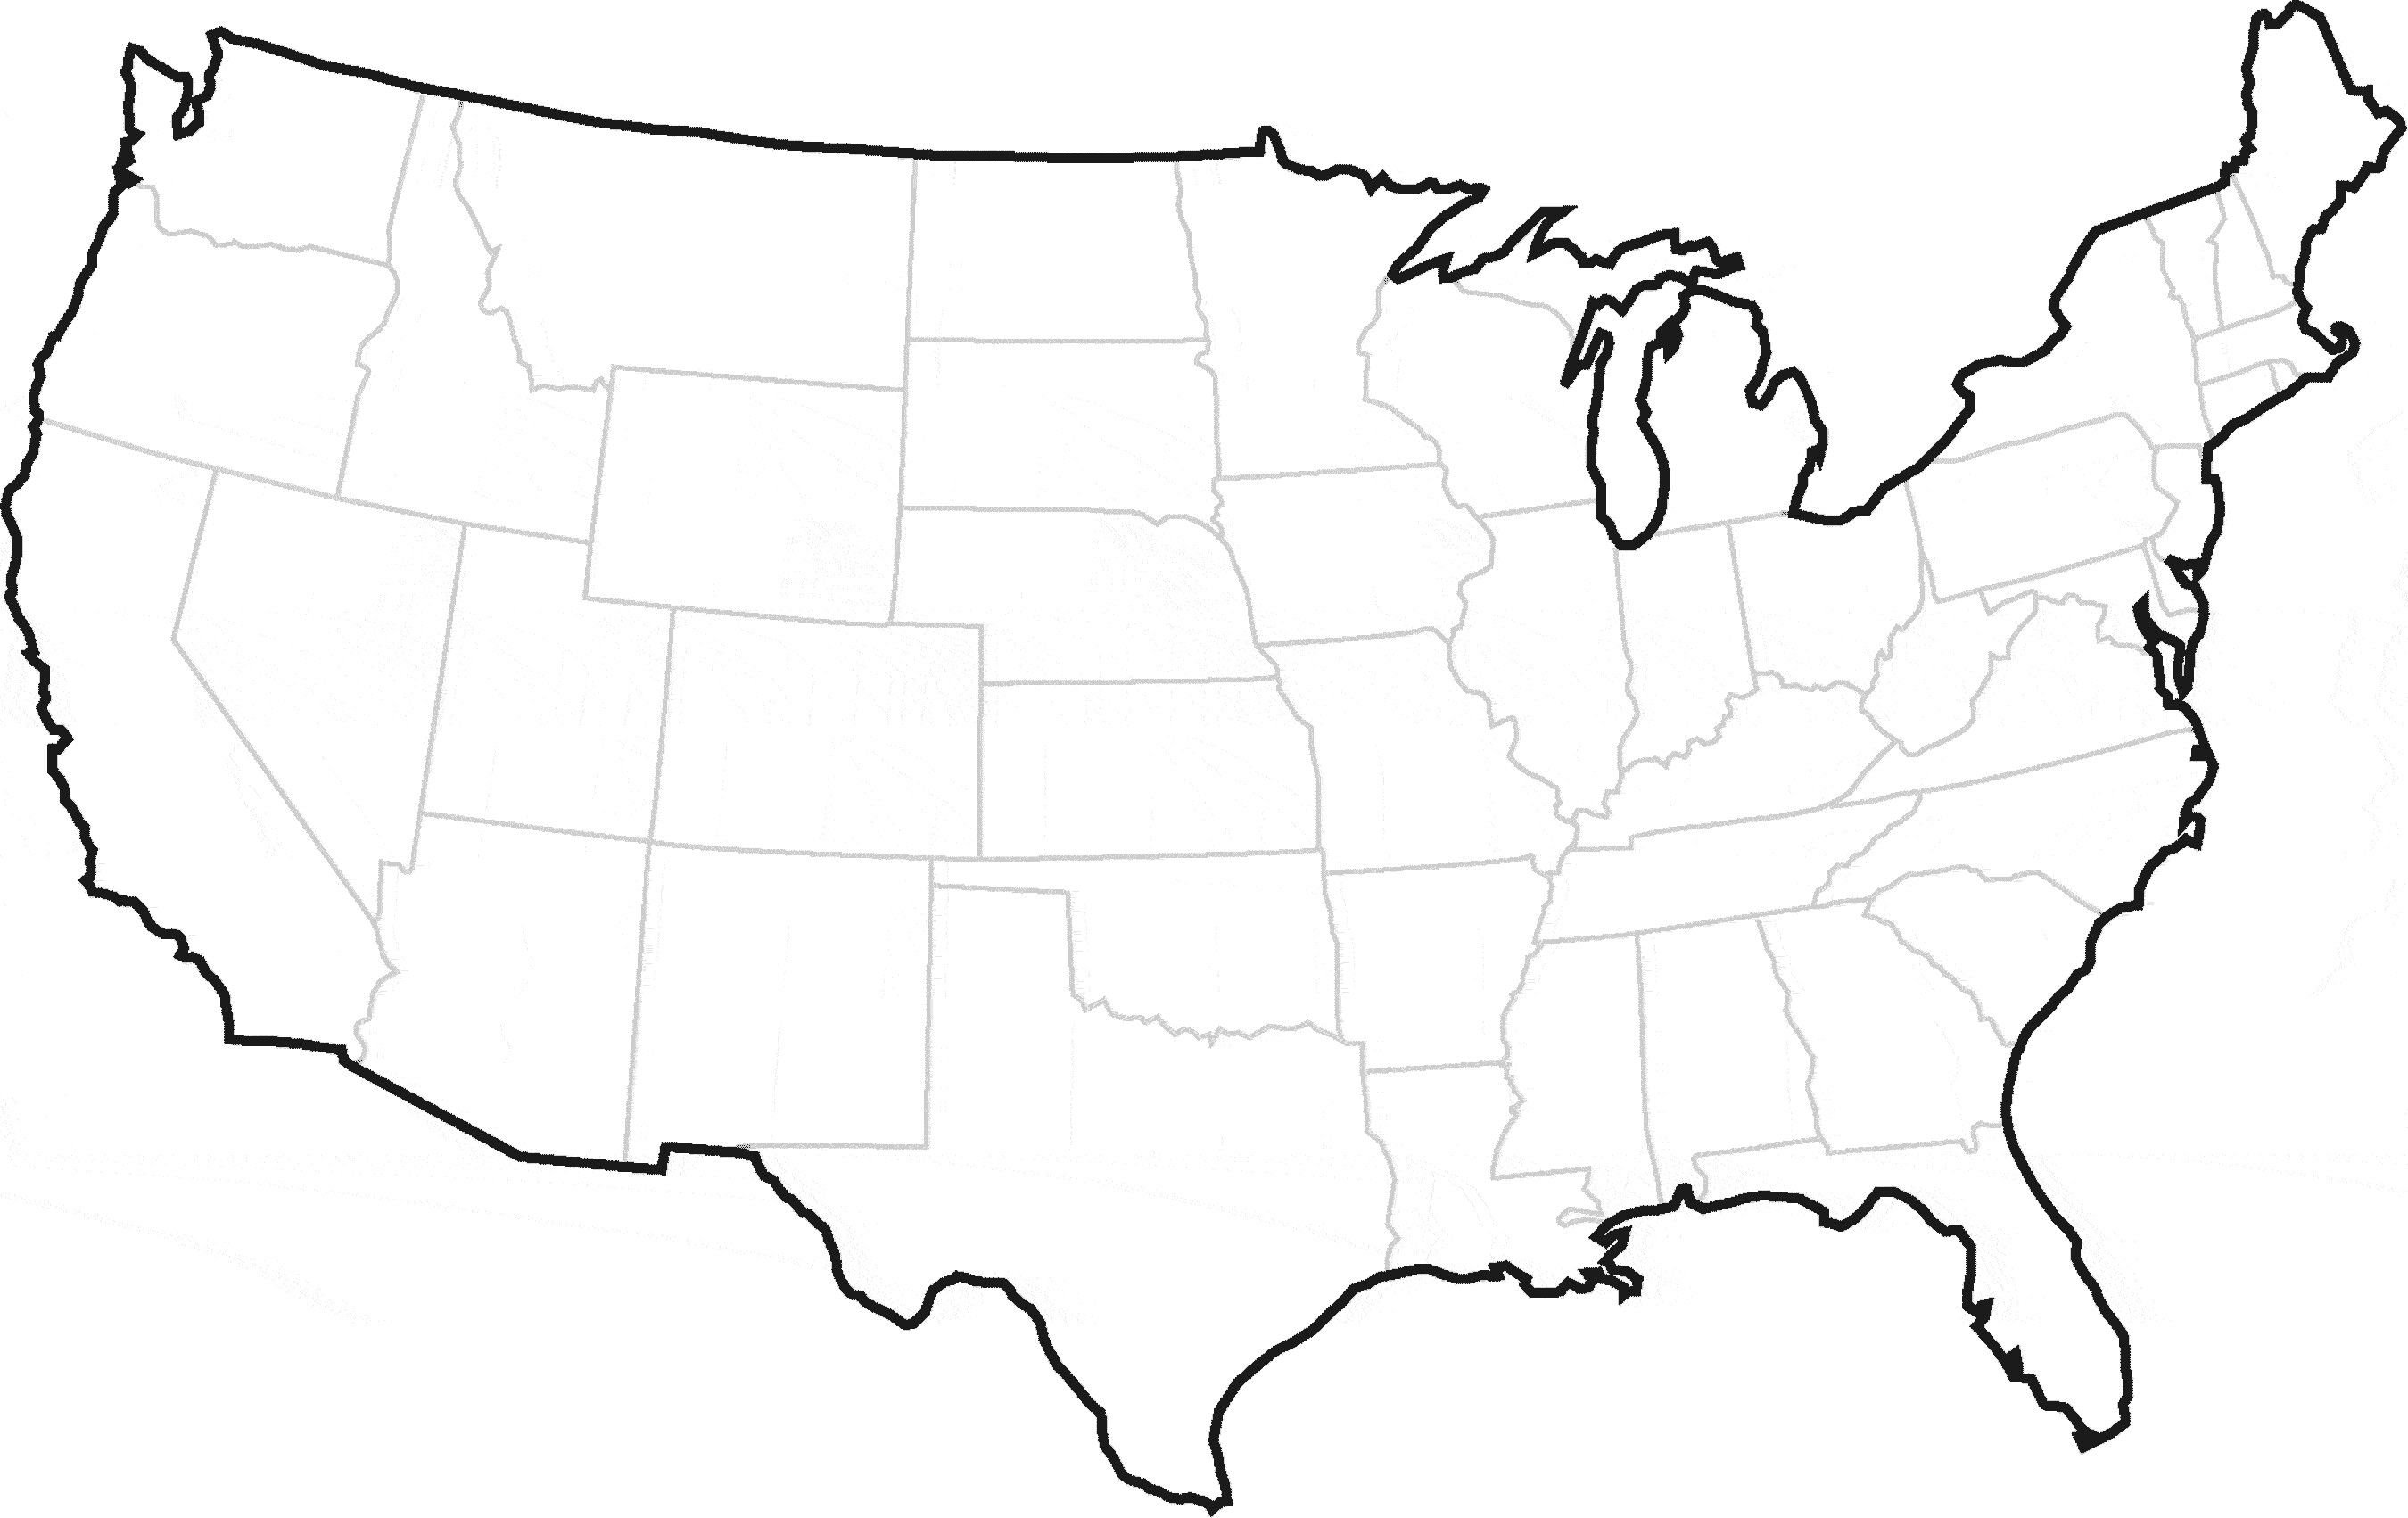 United states outline | United states outline, East coast ...